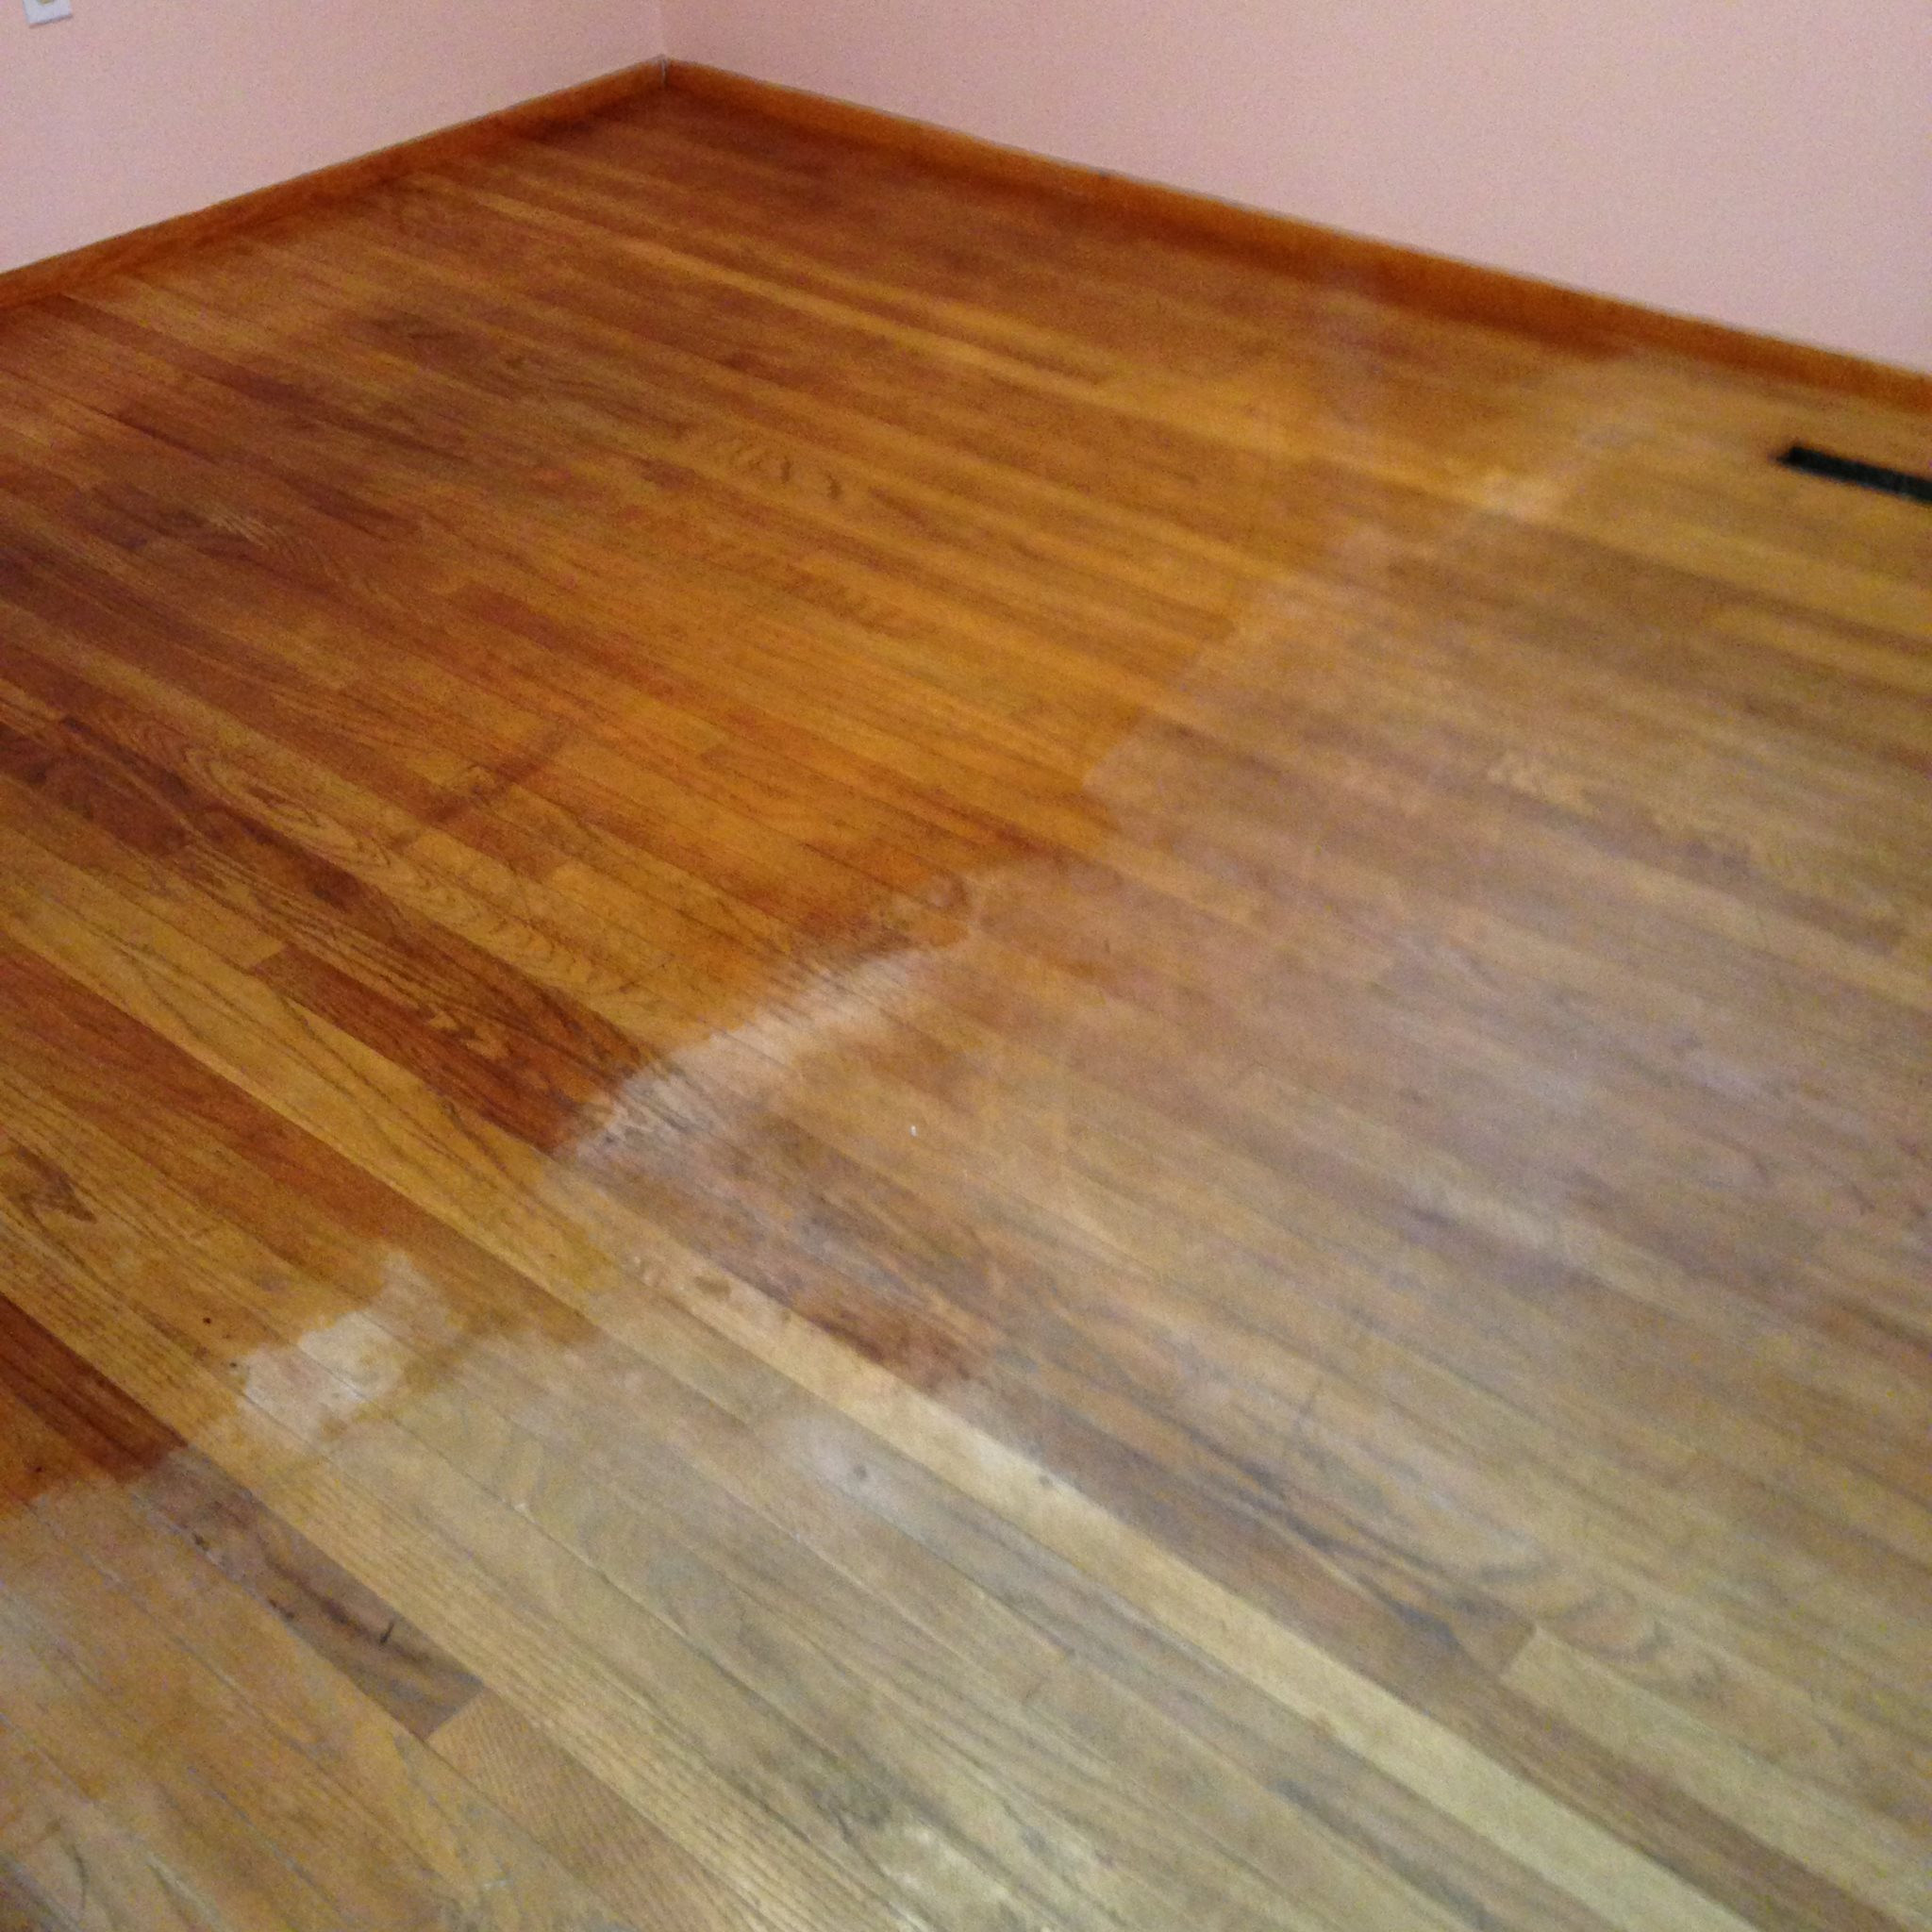 Dark Hardwood Floor Scratch Repair Of 15 Wood Floor Hacks Every Homeowner Needs to Know within Wood Floor Hacks 15